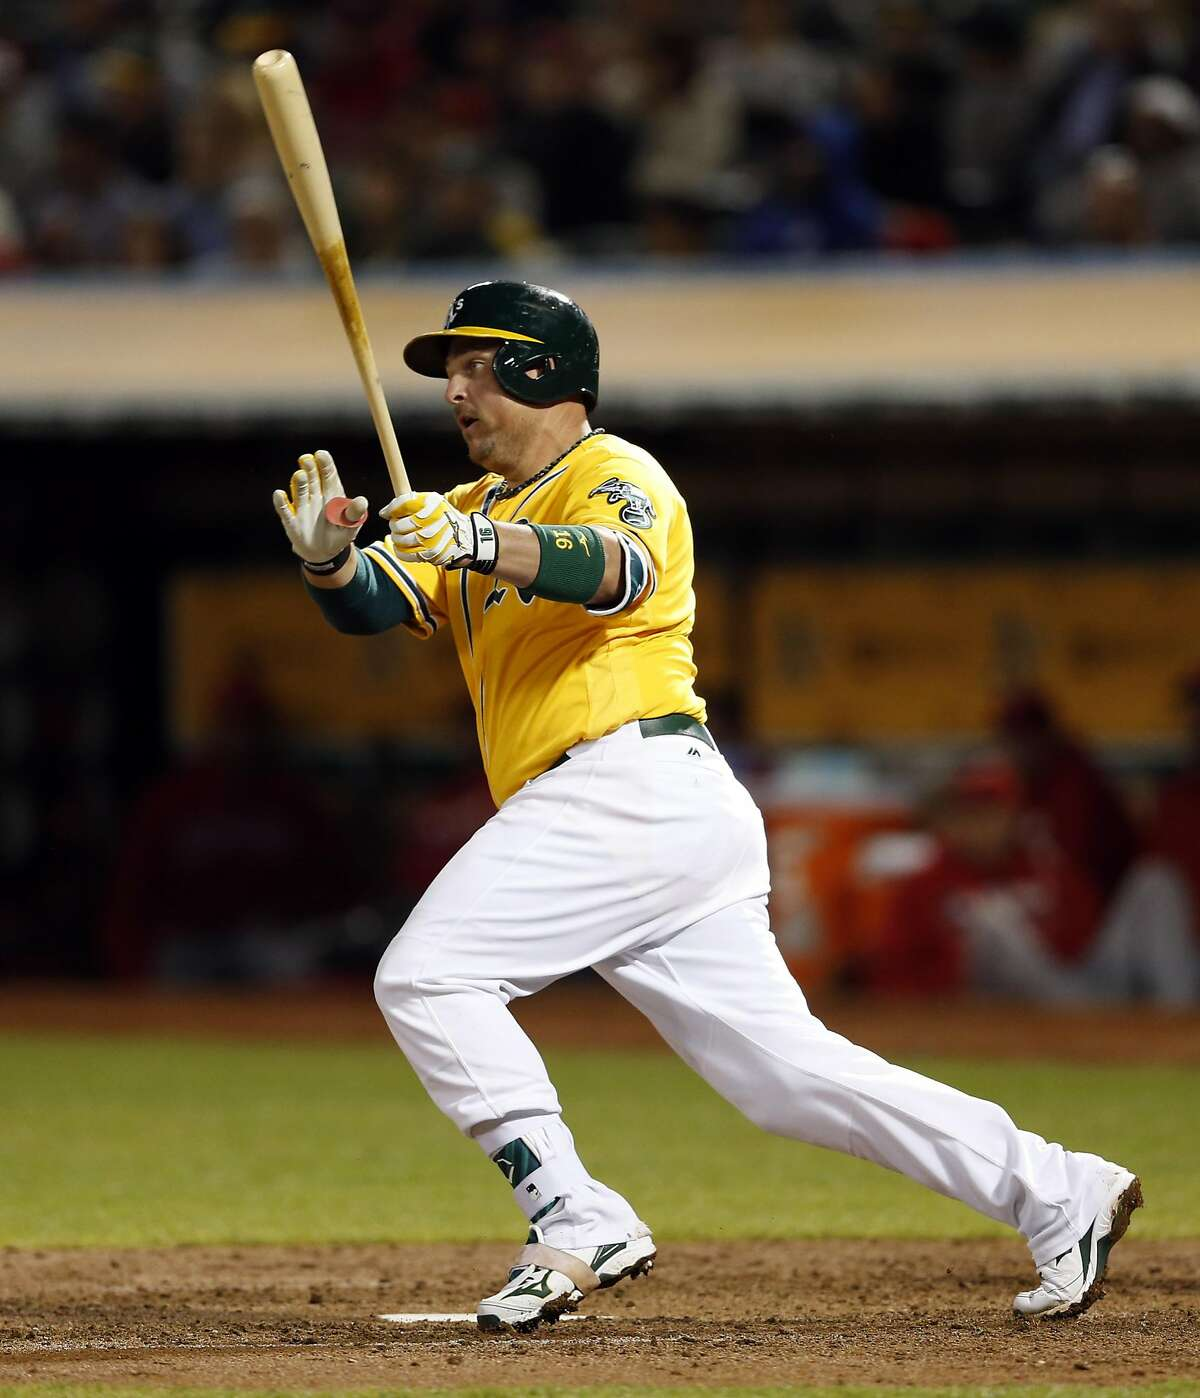 Oakland Athletics' Billy Butler singles in 8th inning of A's 3-2 win over Los Angeles Angels in MLB game at Oakland Coliseum in Oakland, Calif., on Tuesday, September 6, 2016.